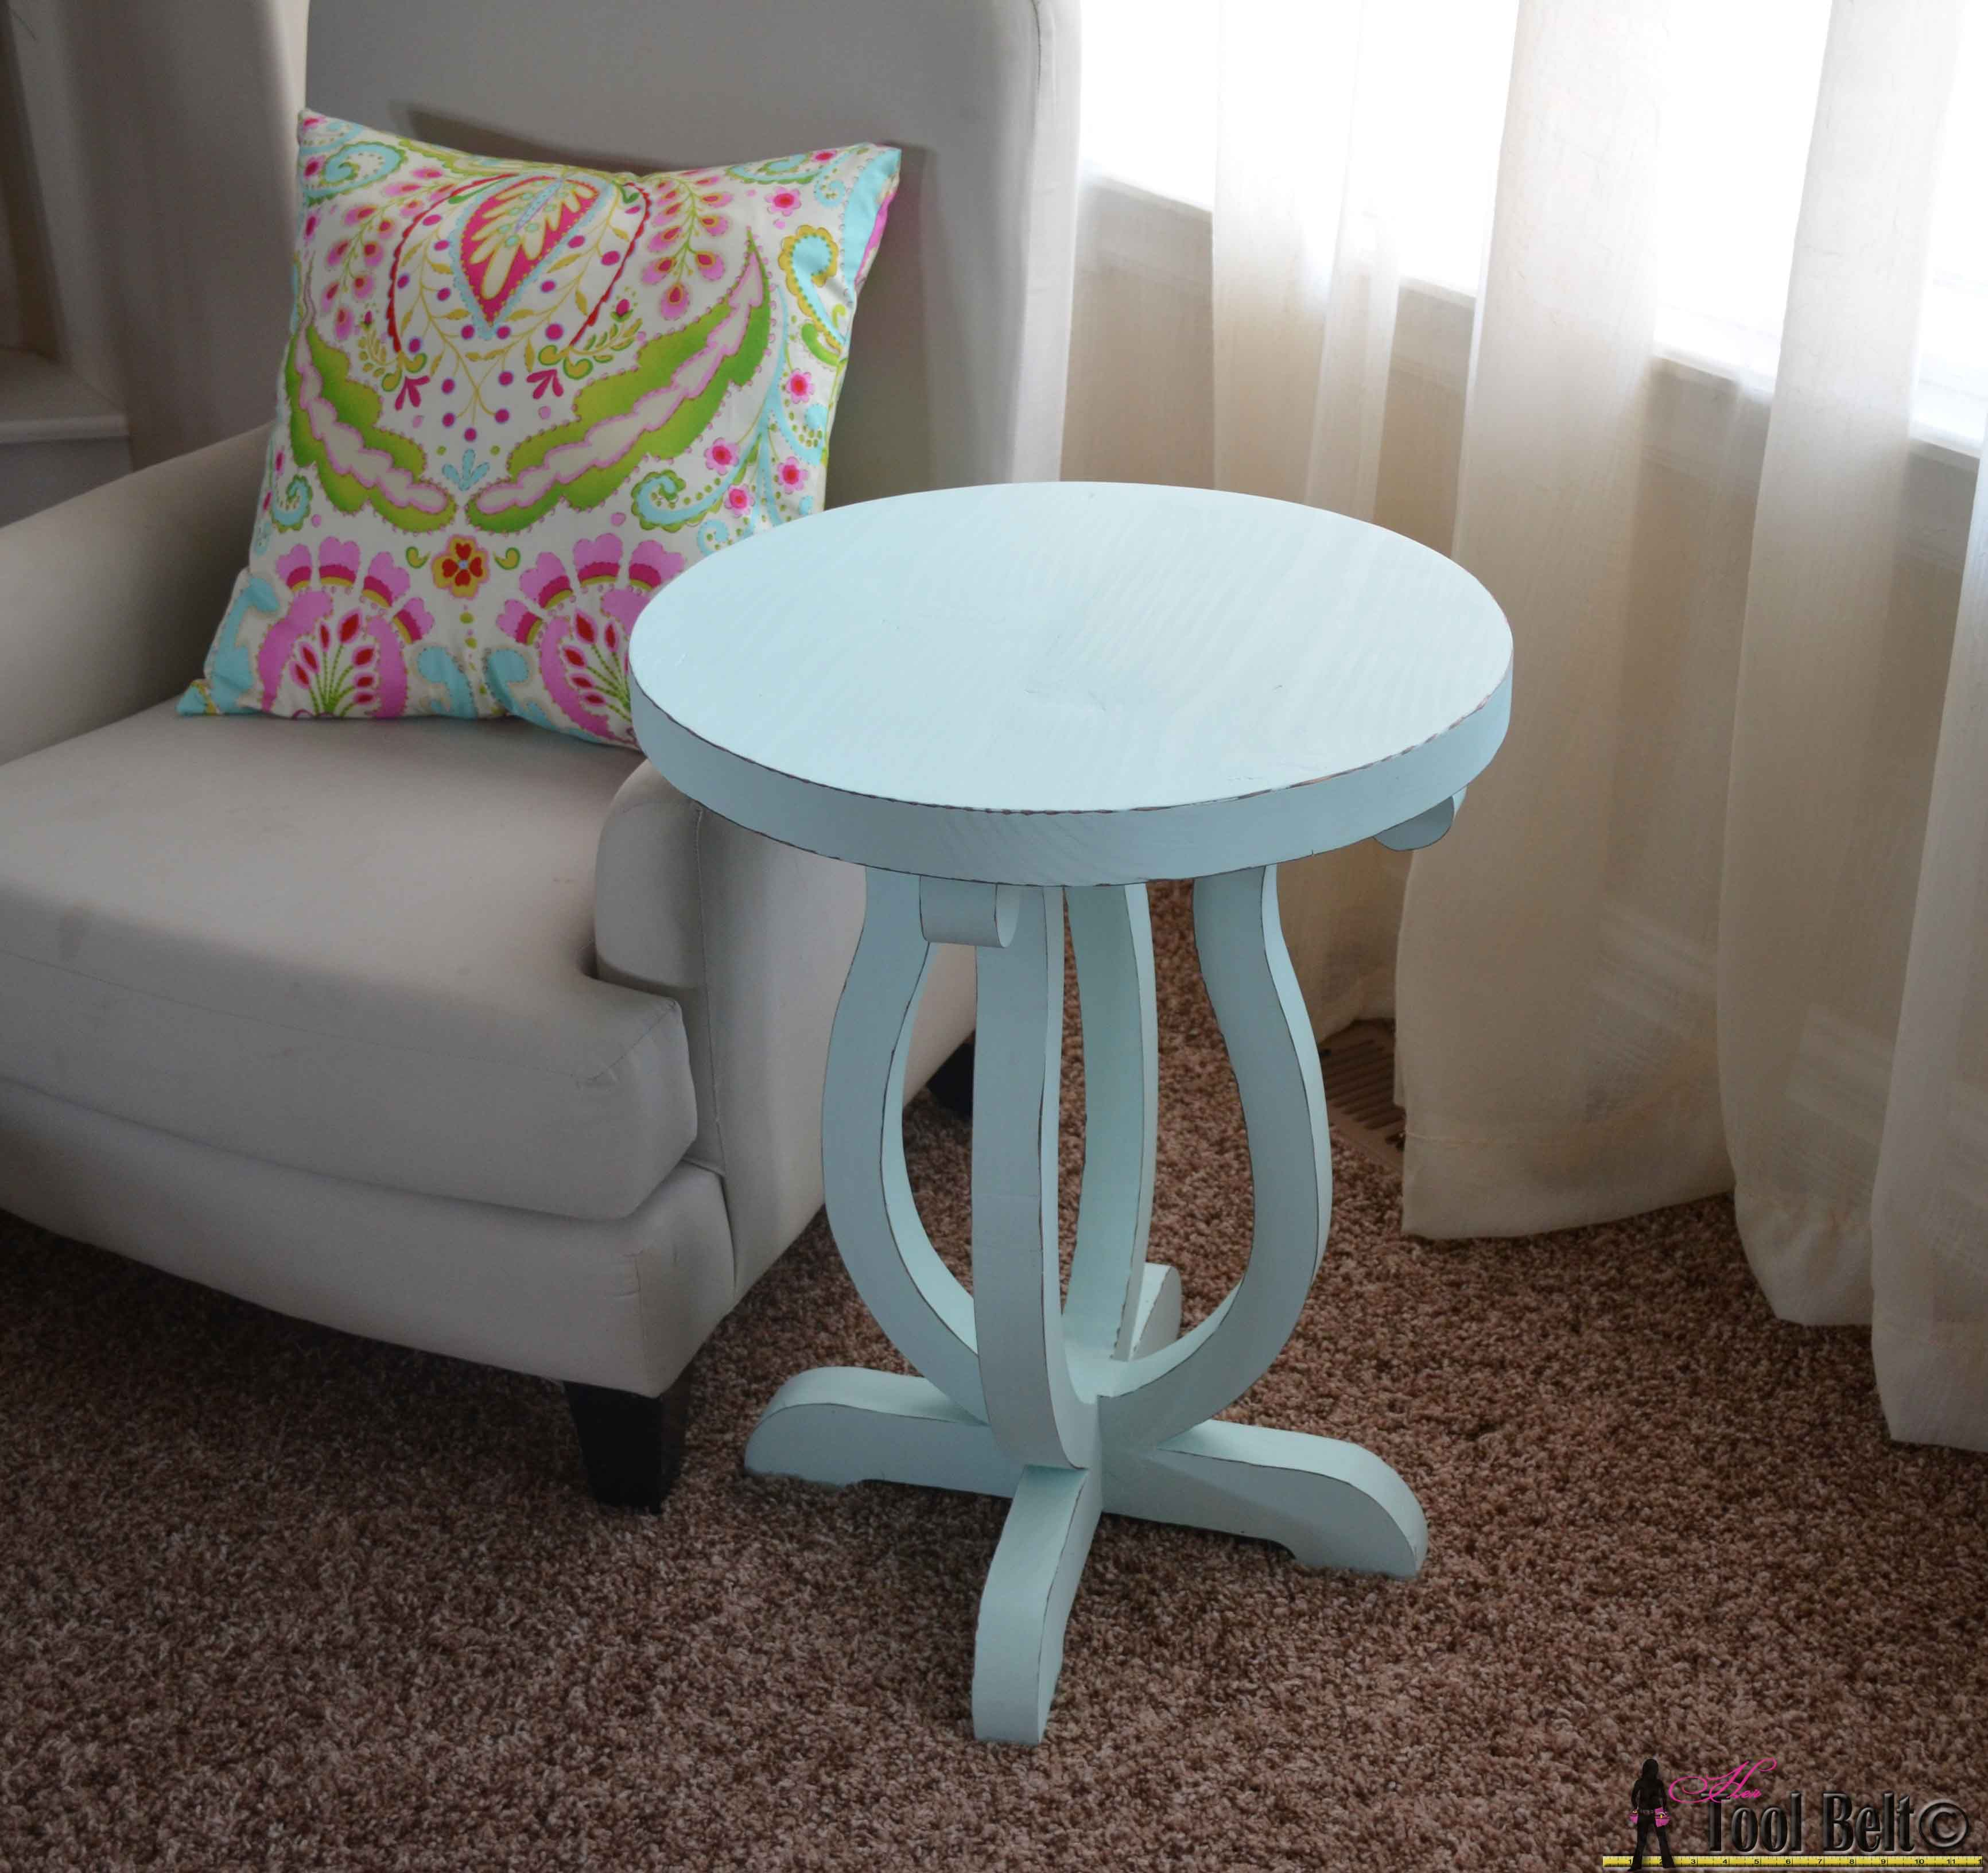 curvy side table her tool belt brynn pottery barn flower accent build cute from simple board free plans and counter height extendable college dorm room ashley furniture nesting